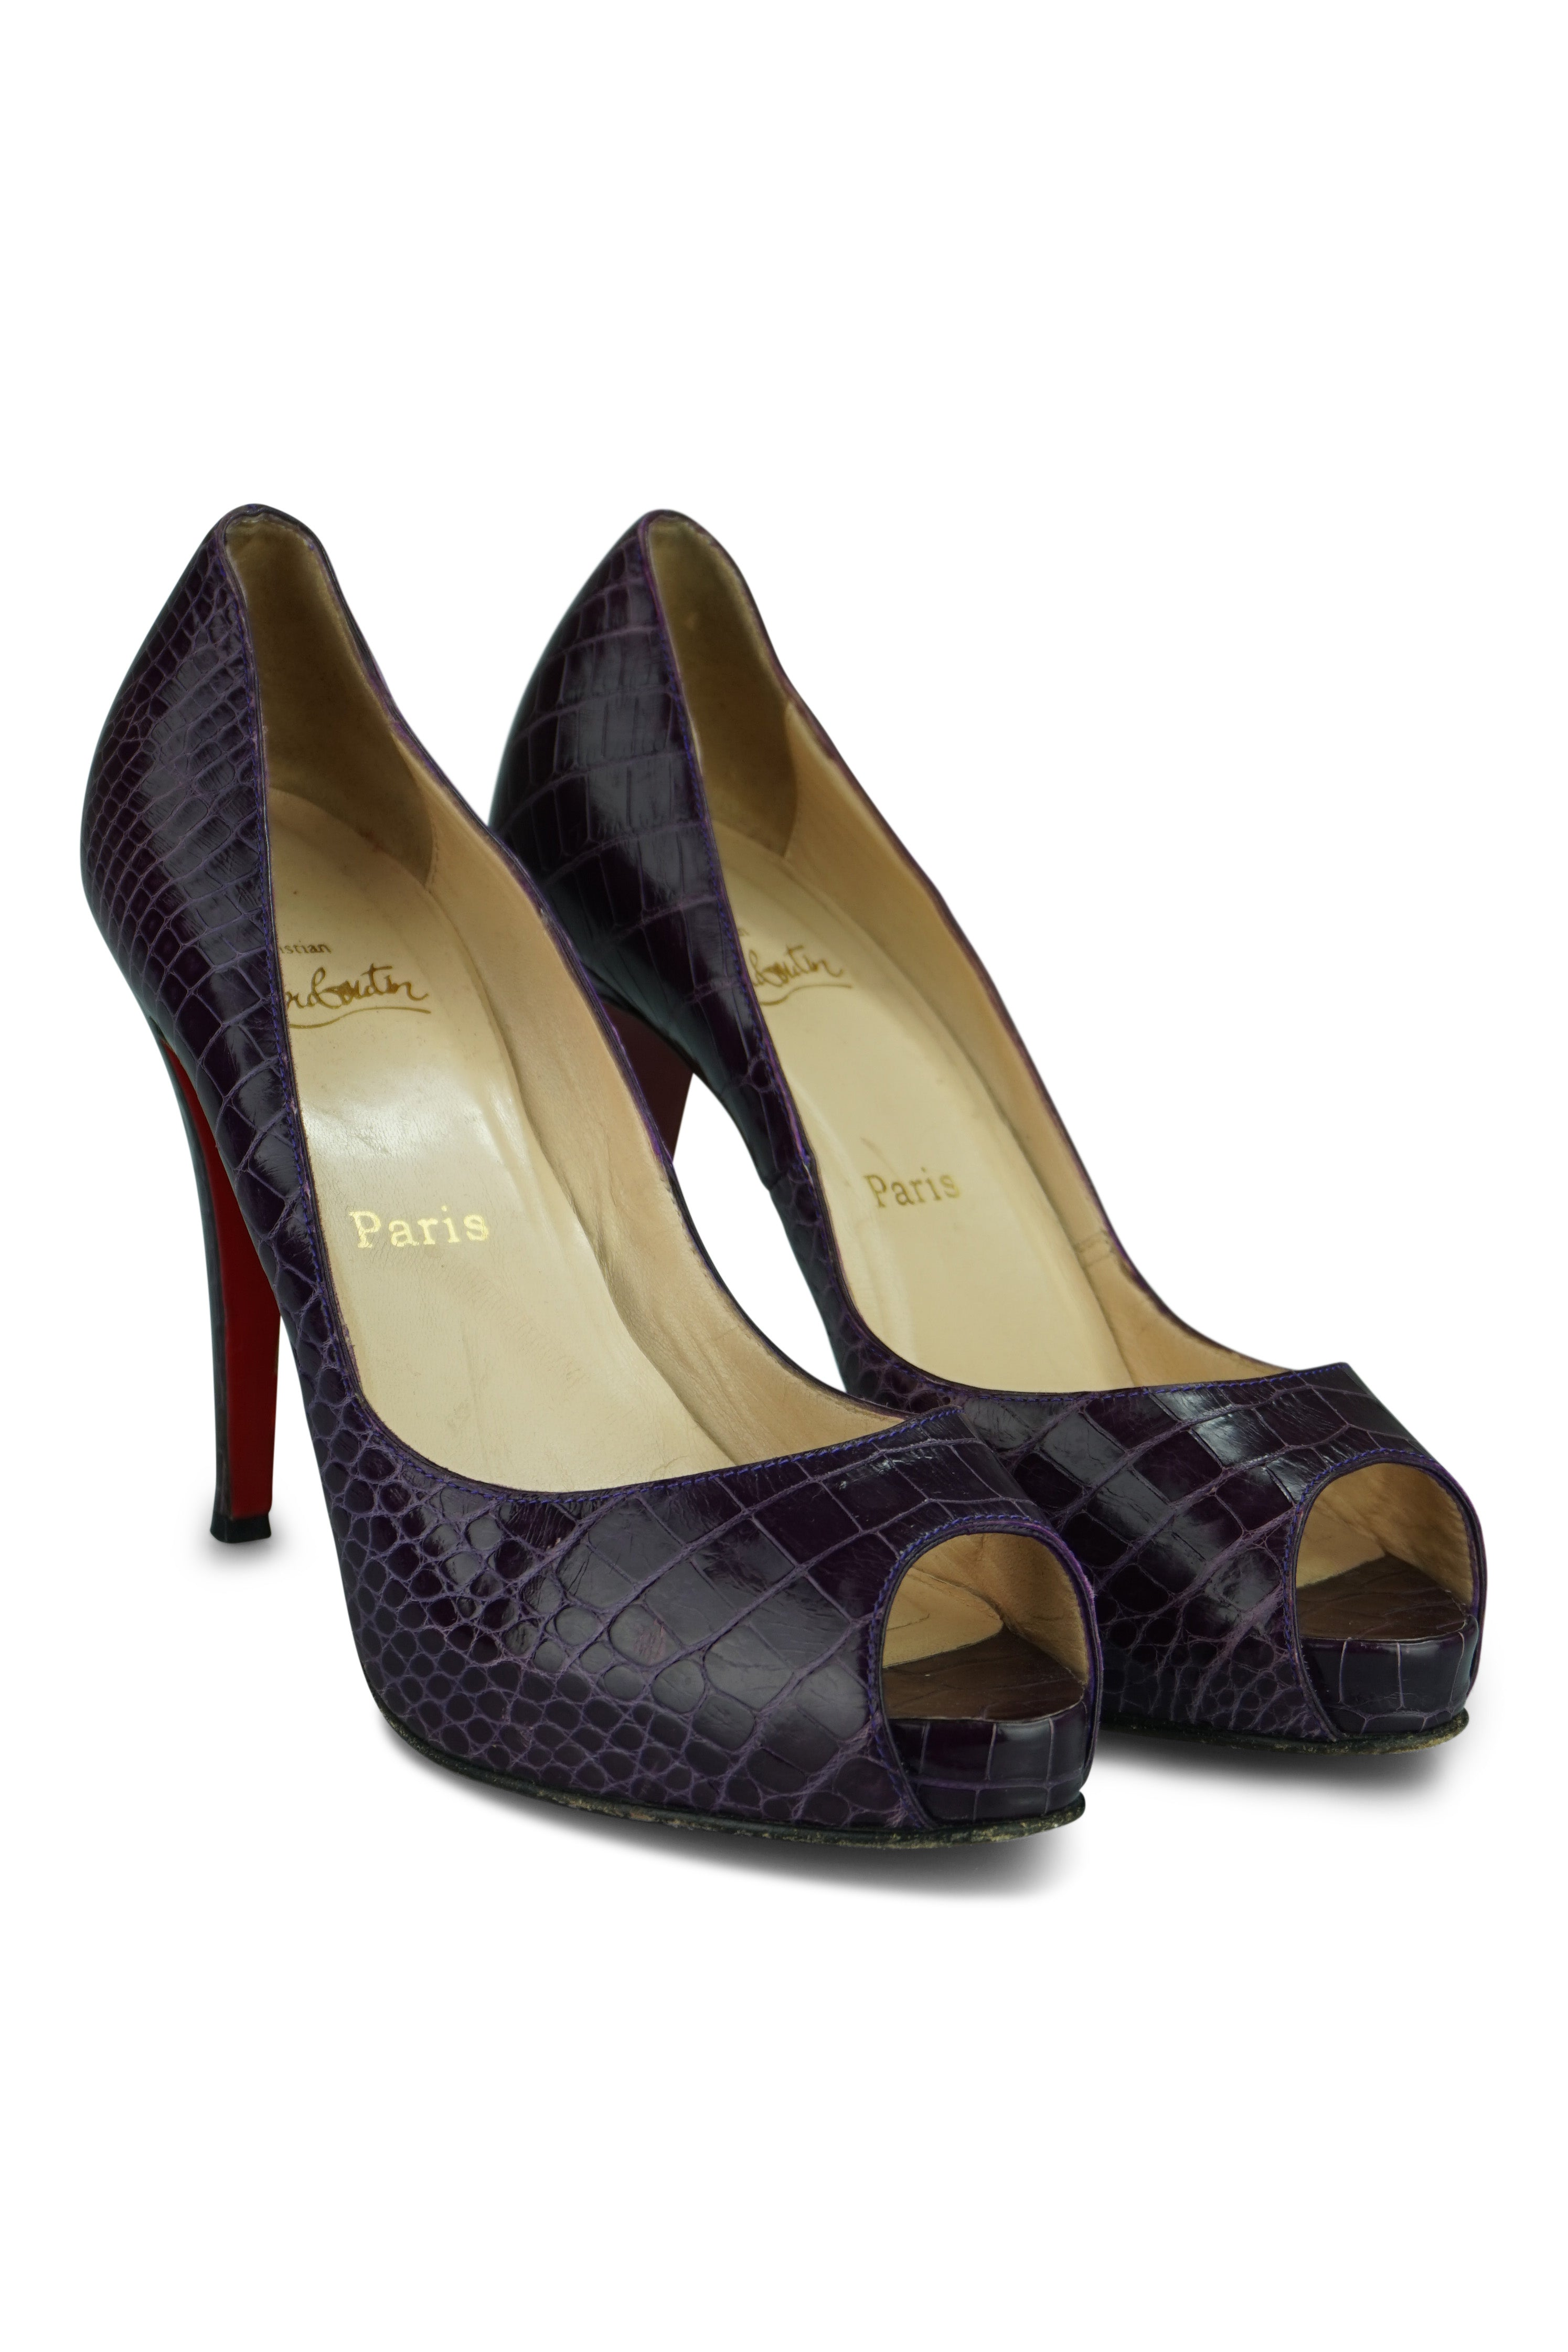 Christian Louboutin Alligator Peep-Toe Pumps